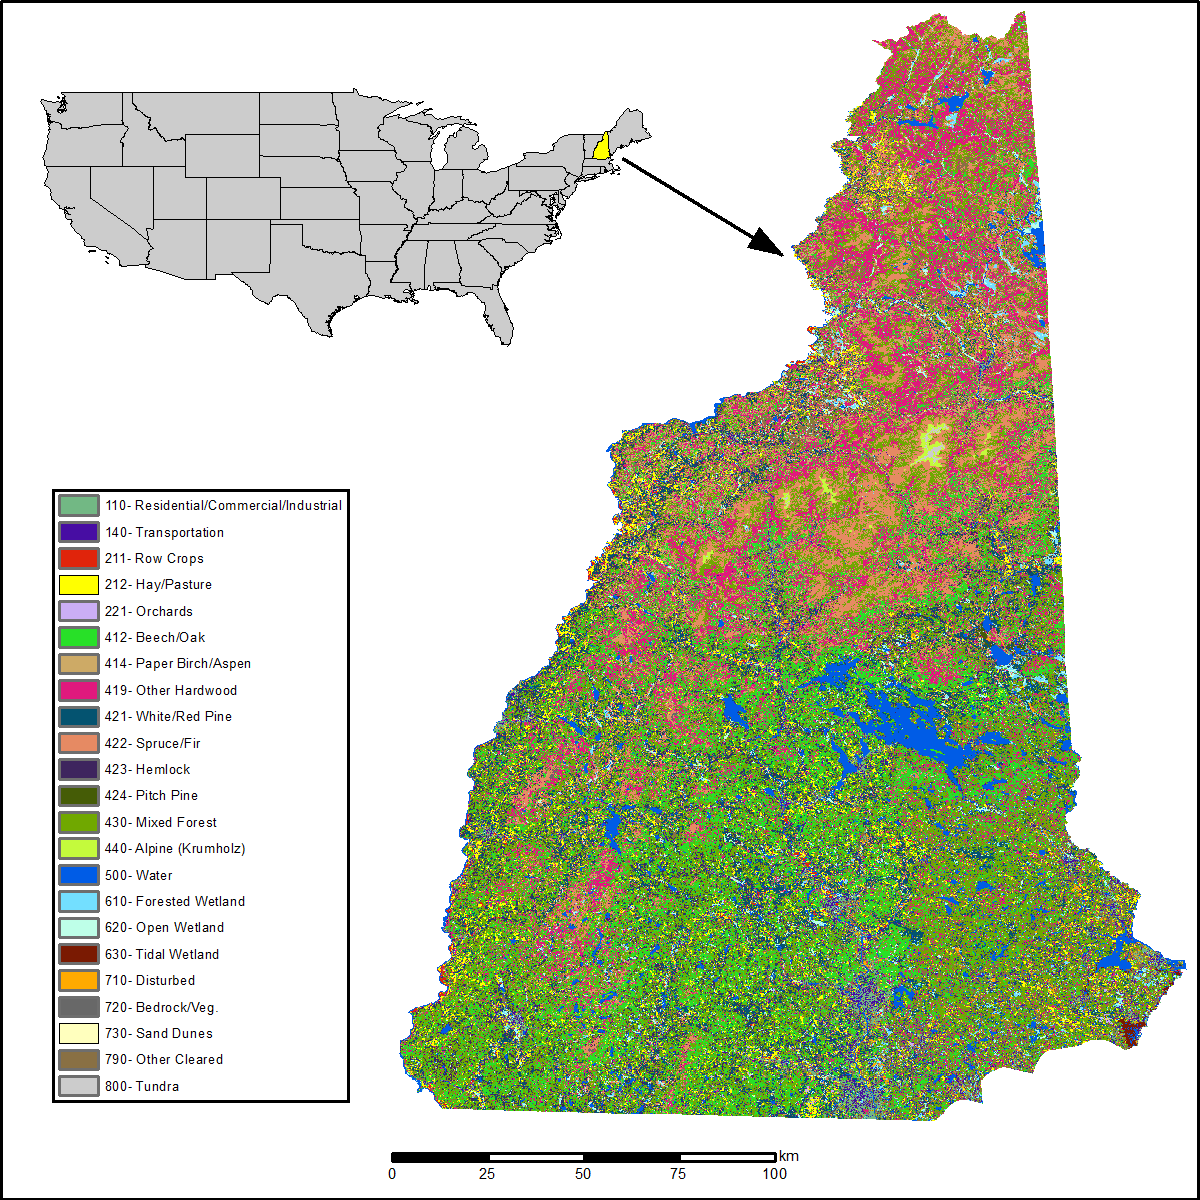 Land Cover And Land Use Classification For The State Of New - State of new hampshire map